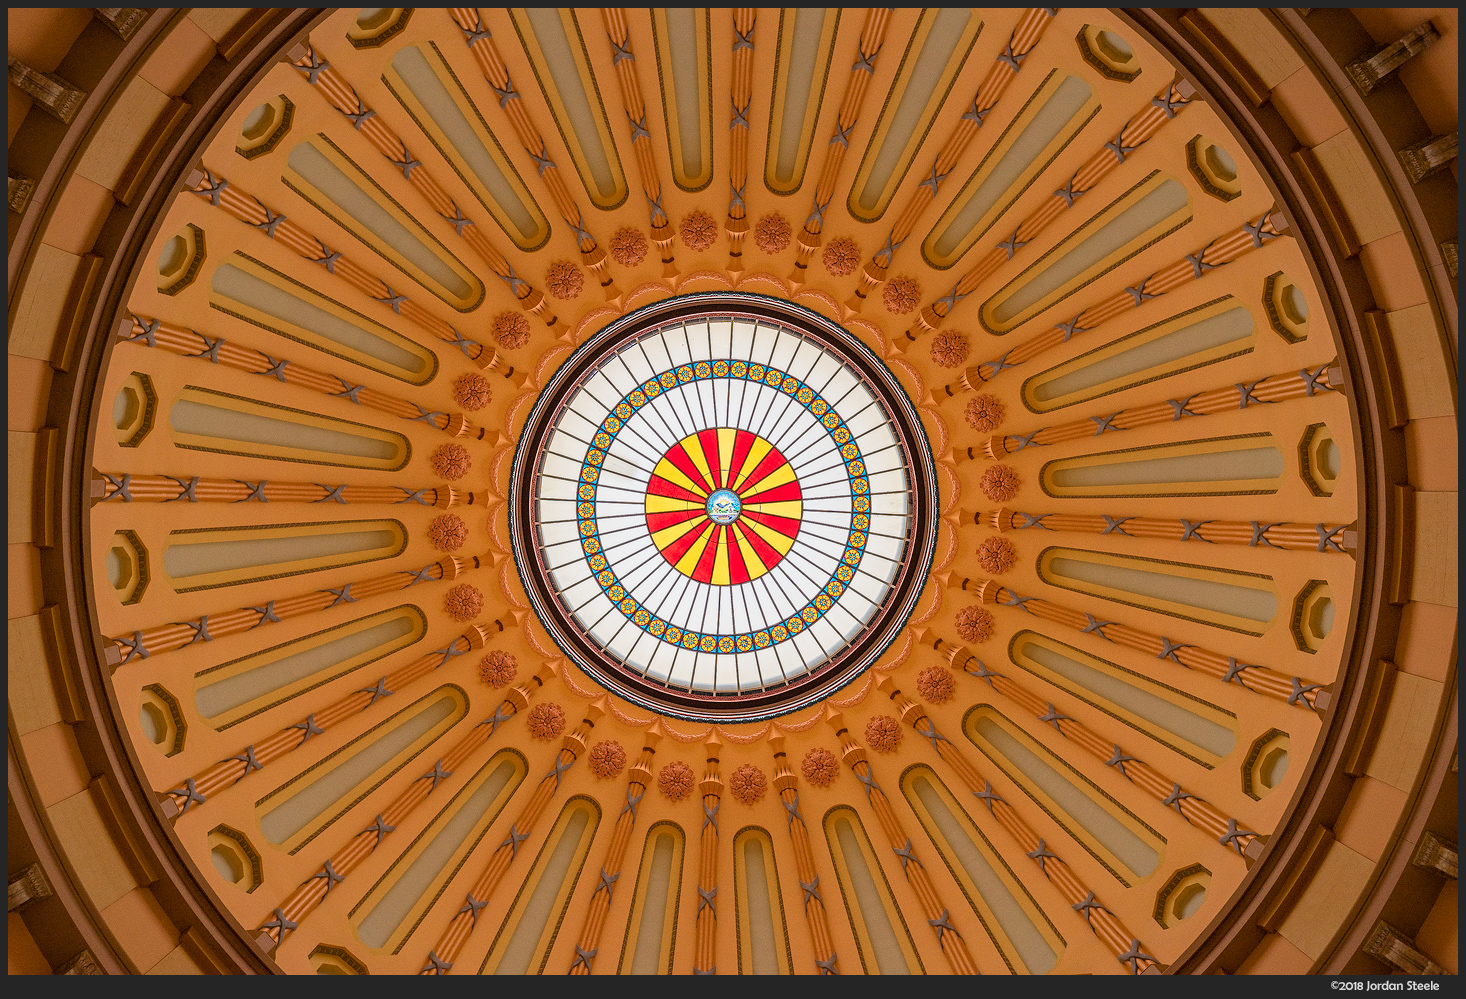 Statehouse Dome - Sony A7 II with Voigtländer 35mm f/1.4 Nokton Classic @ f/4,